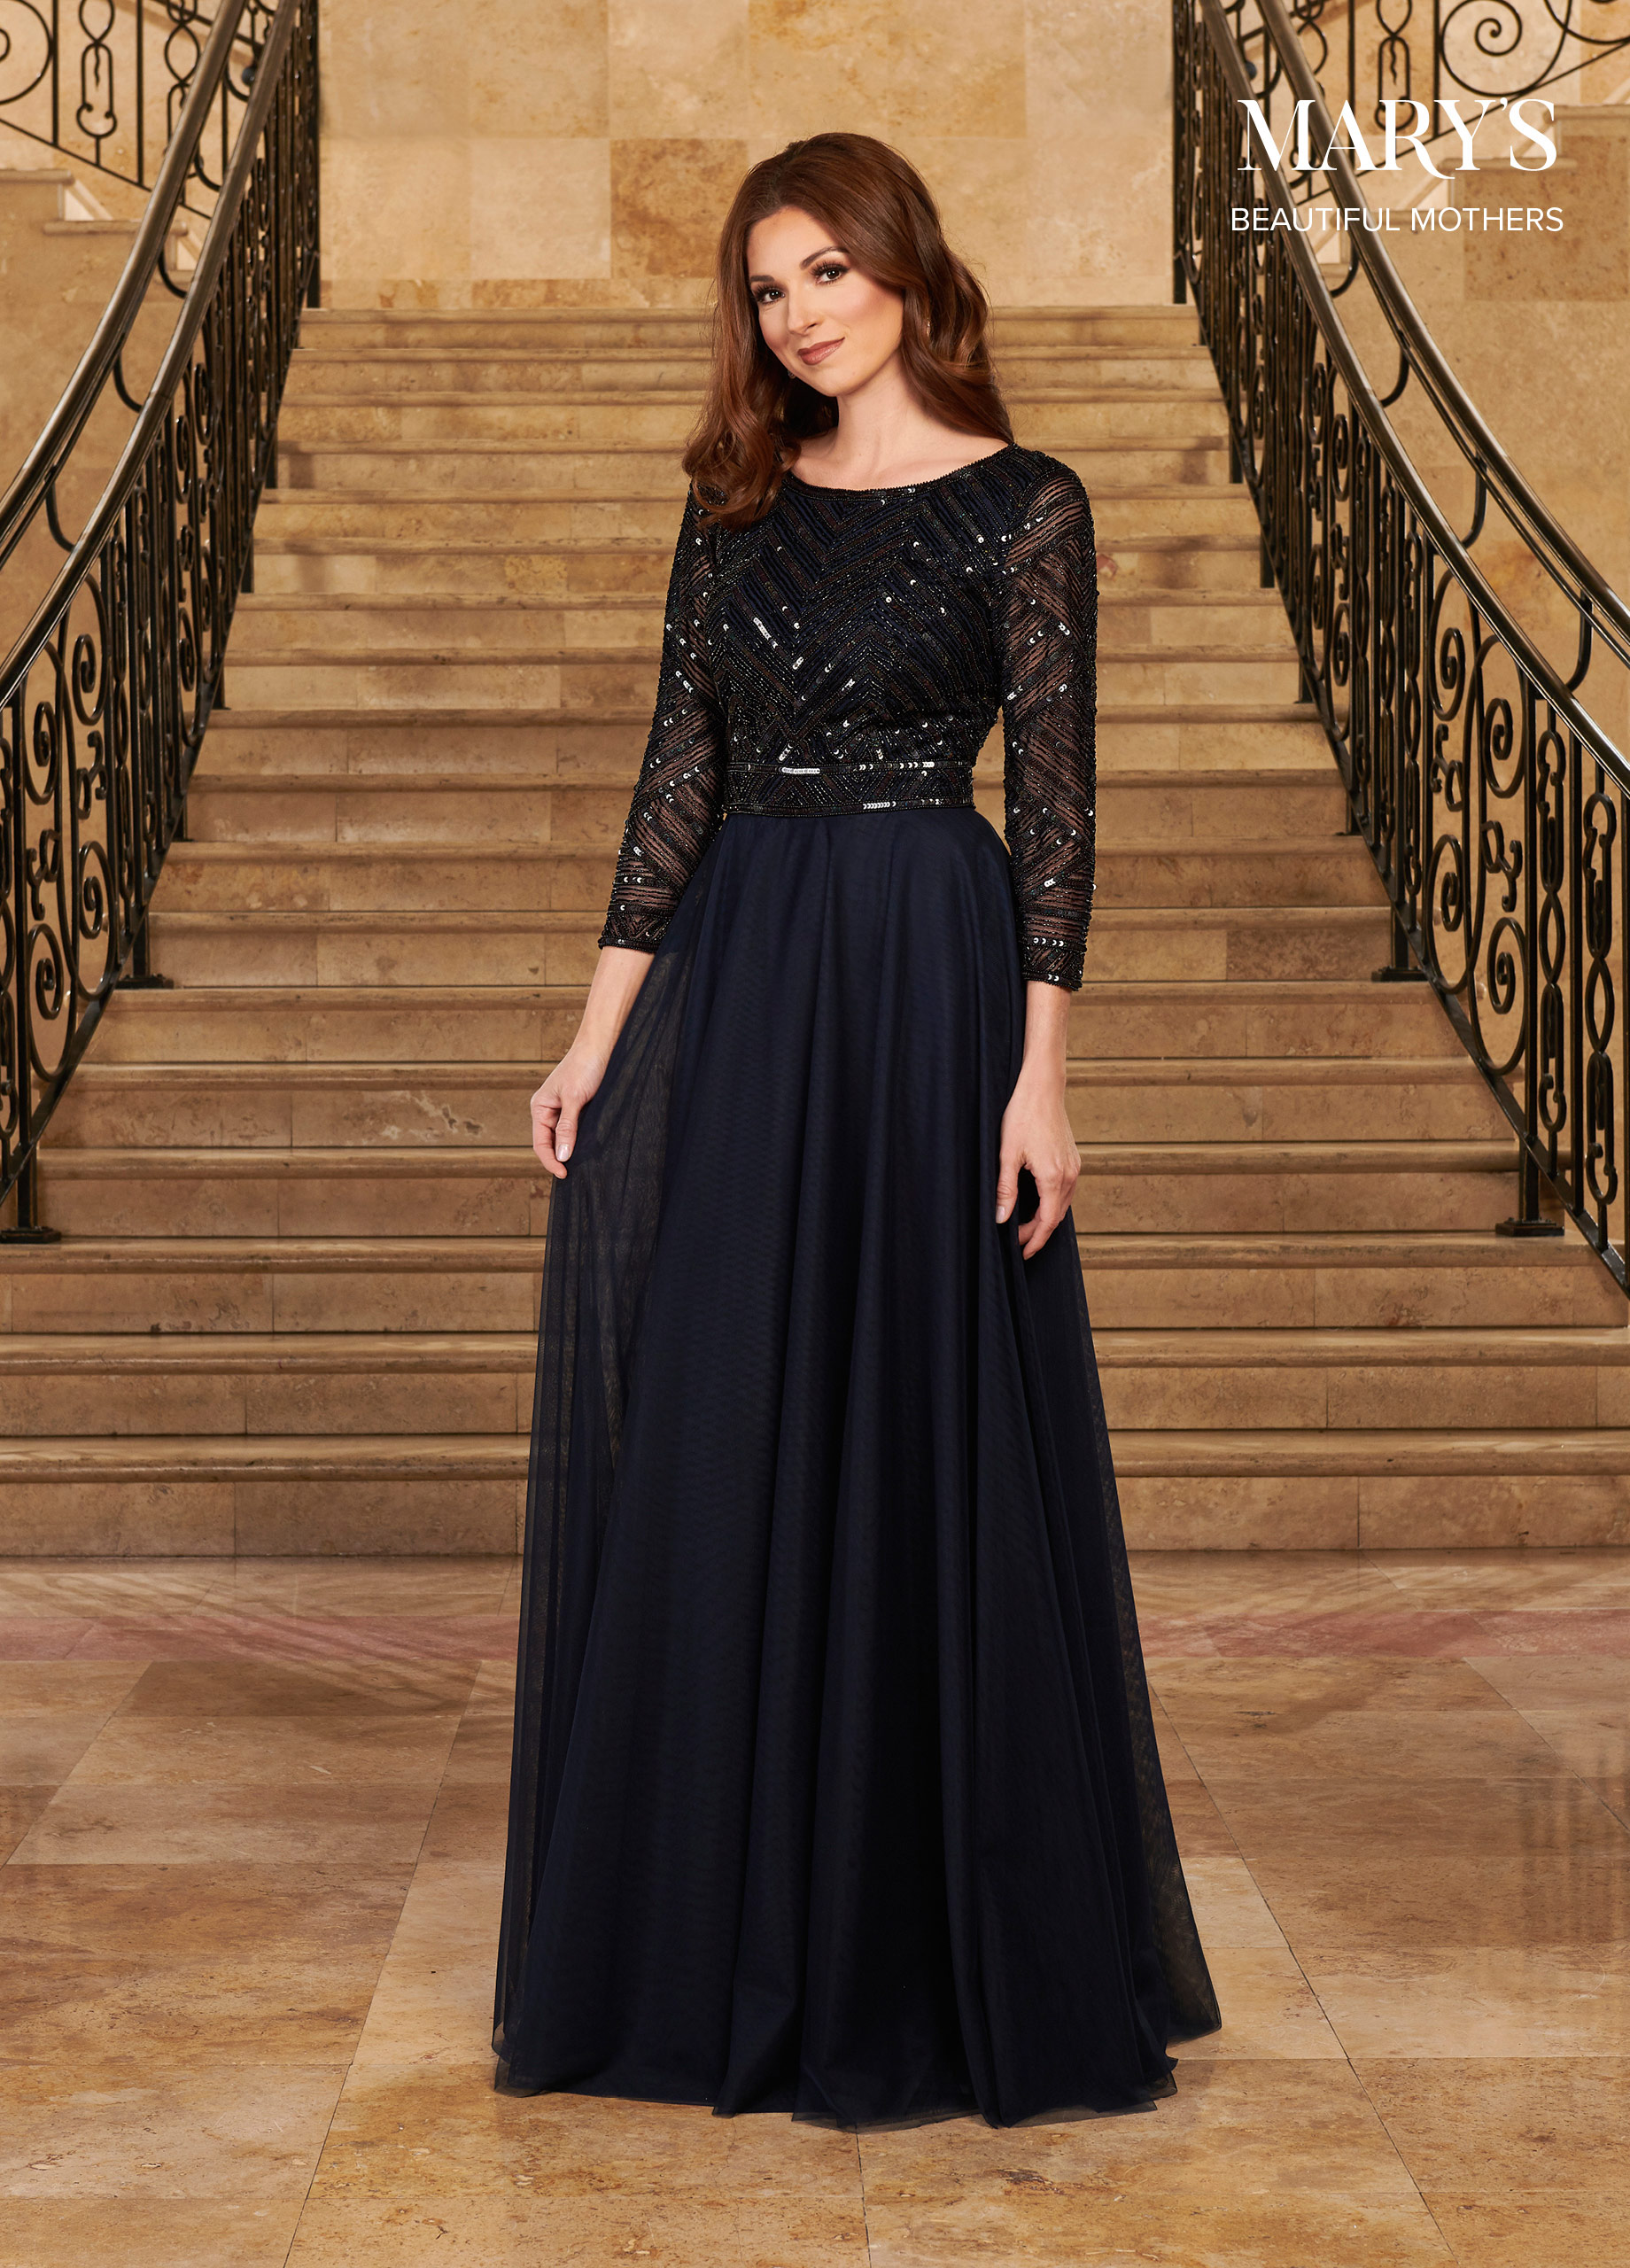 Mother Of The Bride Dresses   Beautiful Mothers   Style - MB8095